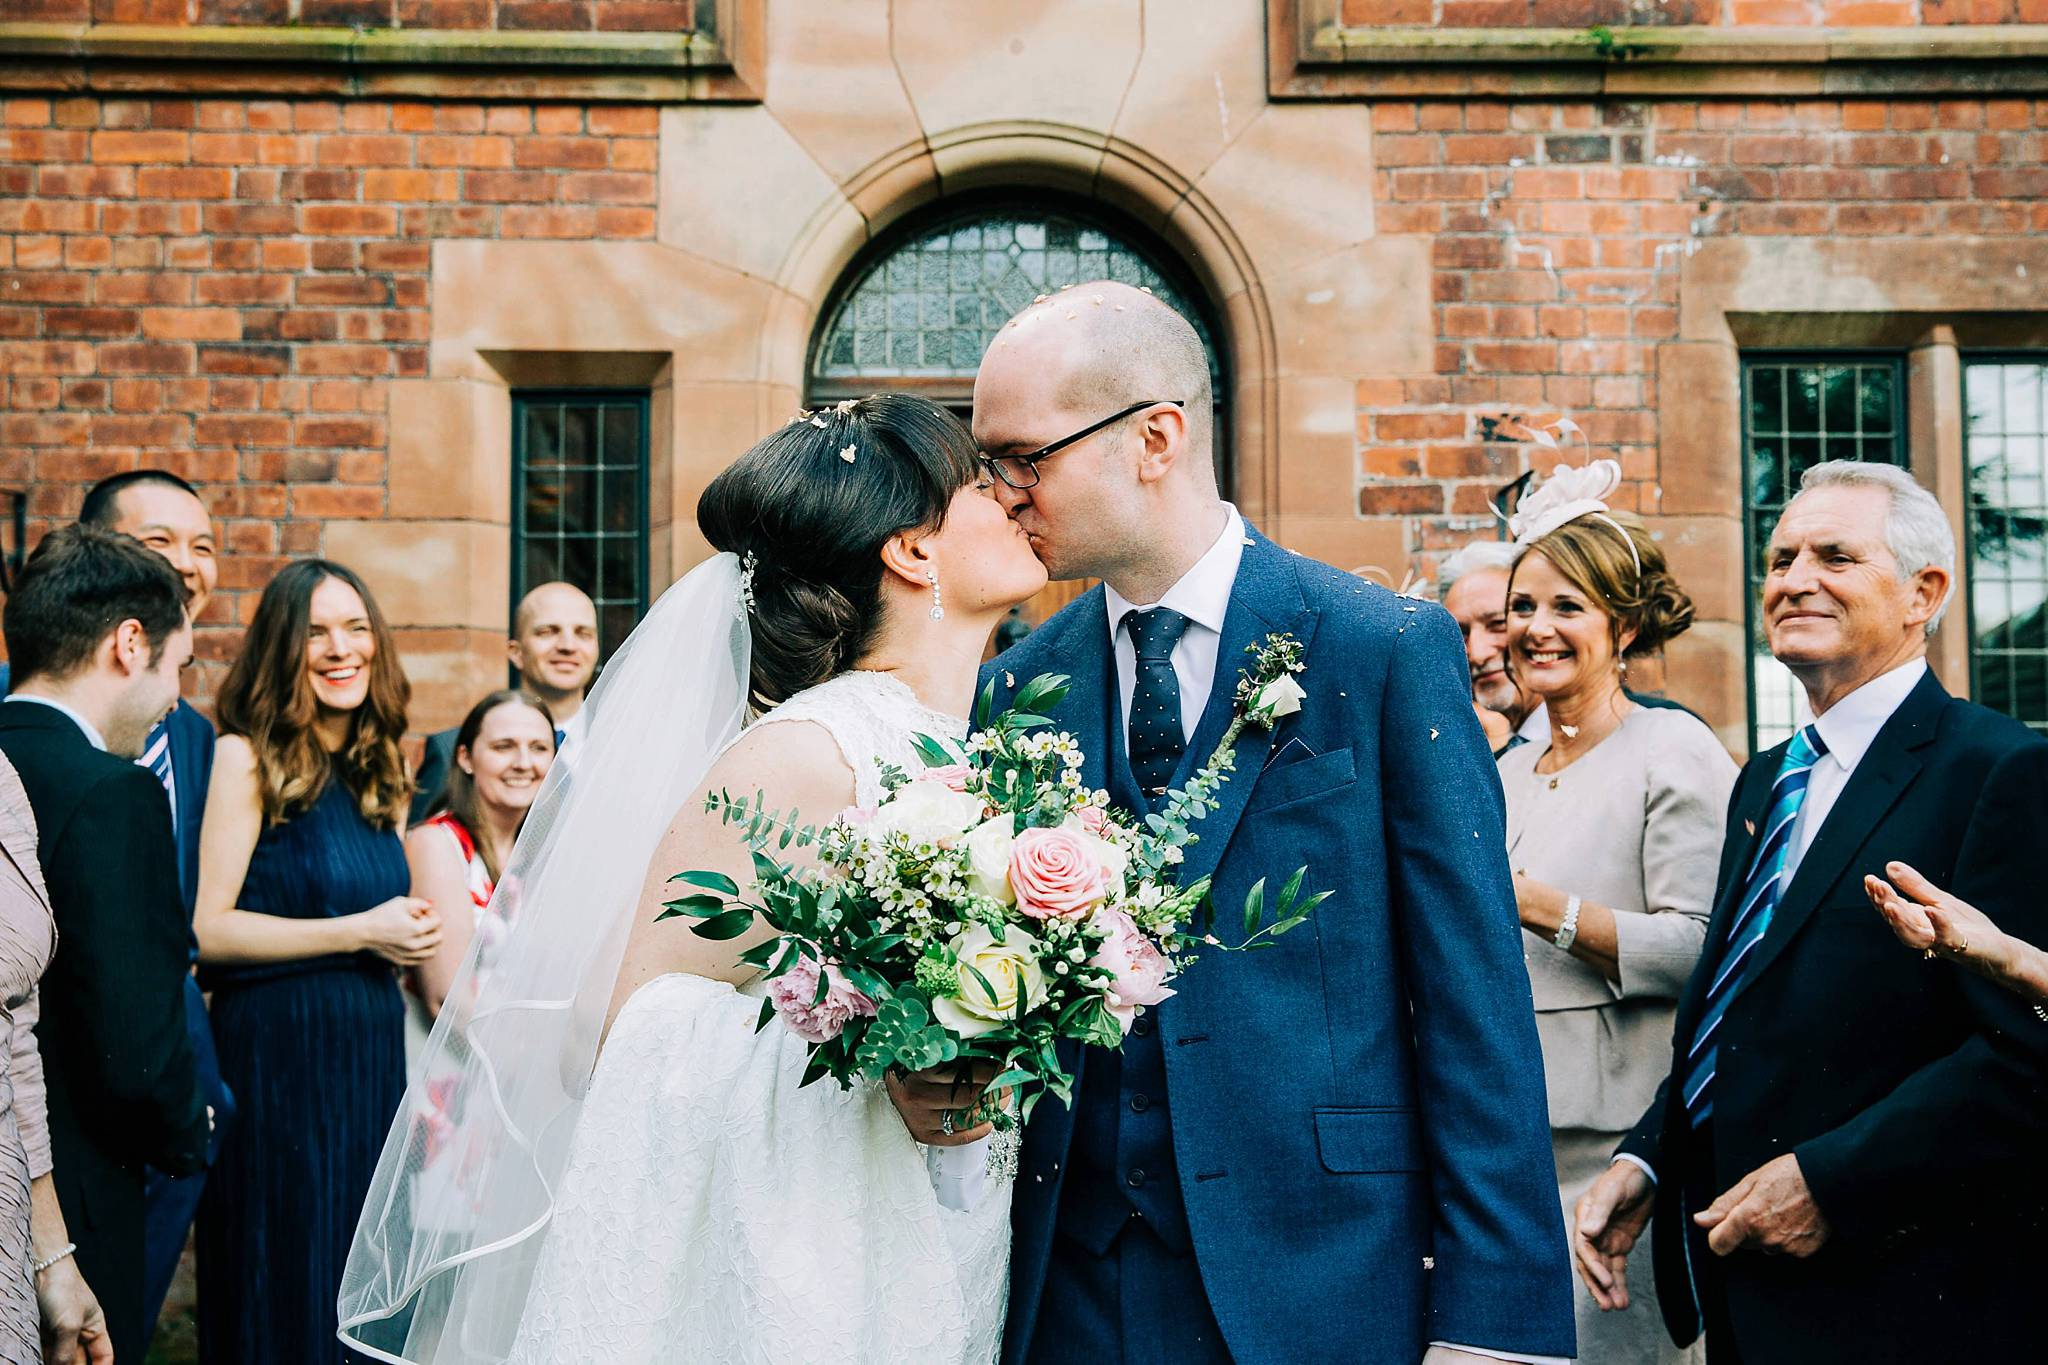 Natural wedding photography Manchester - Clare Robinson Photography_0045.jpg